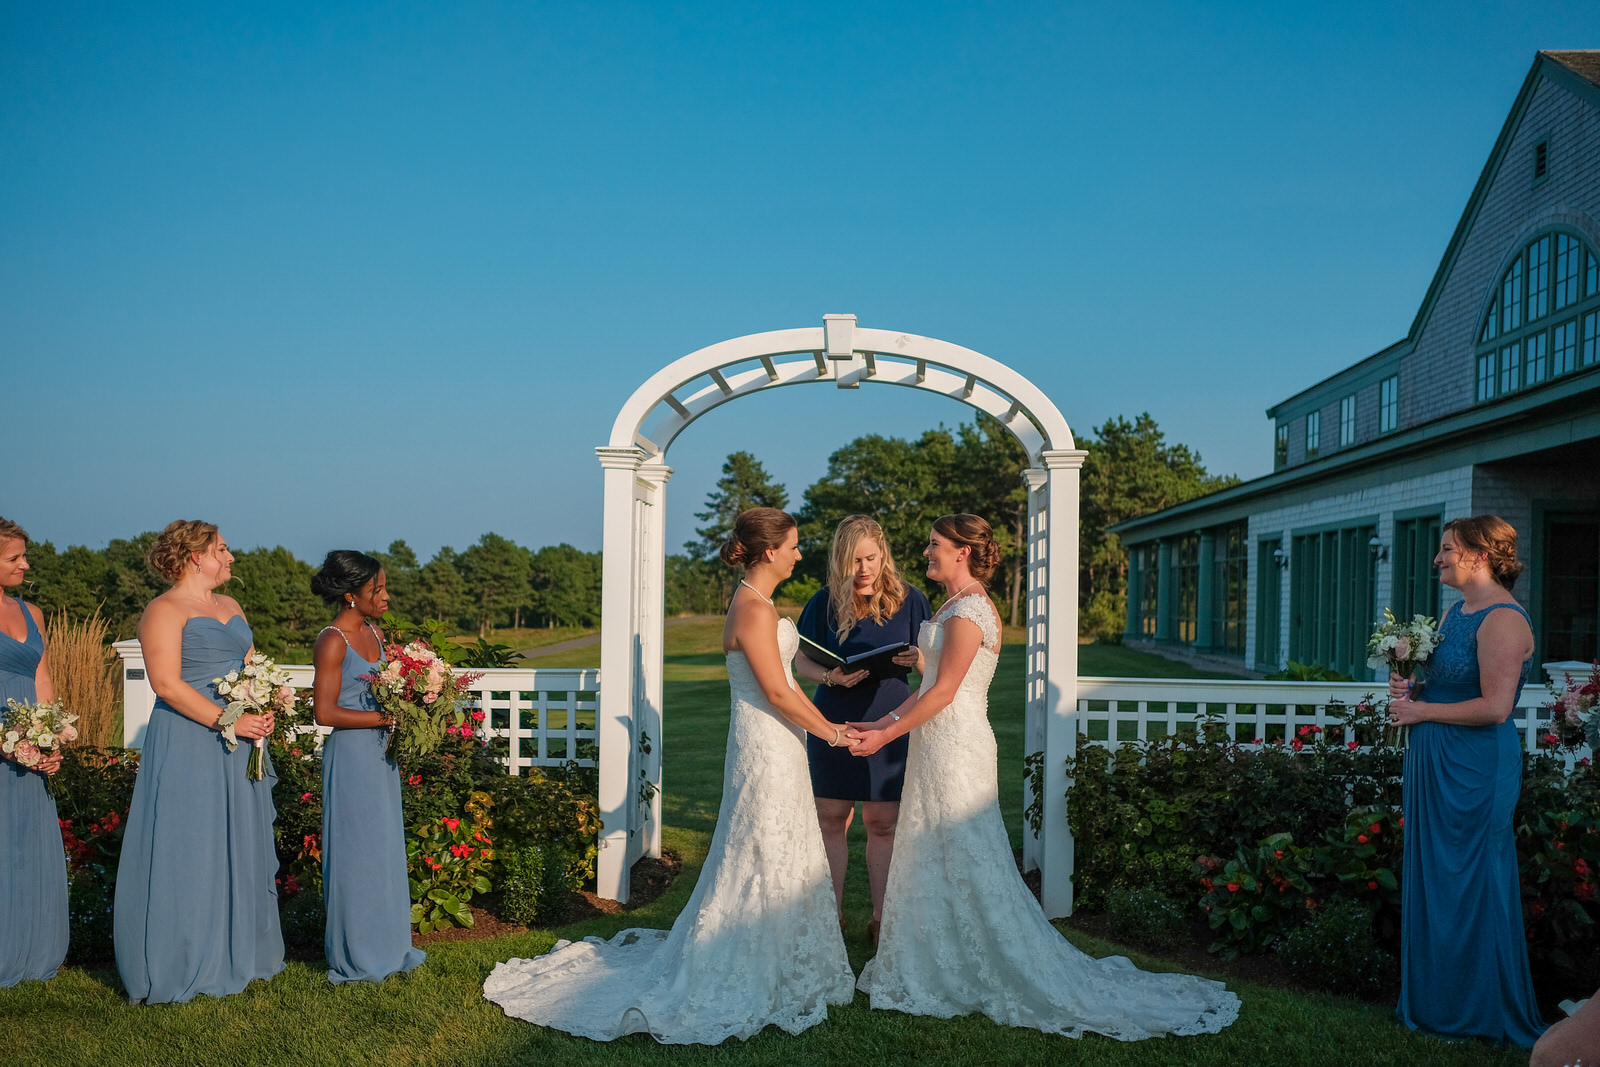 waverly-oaks-golf-club-wedding-photography-51.jpg